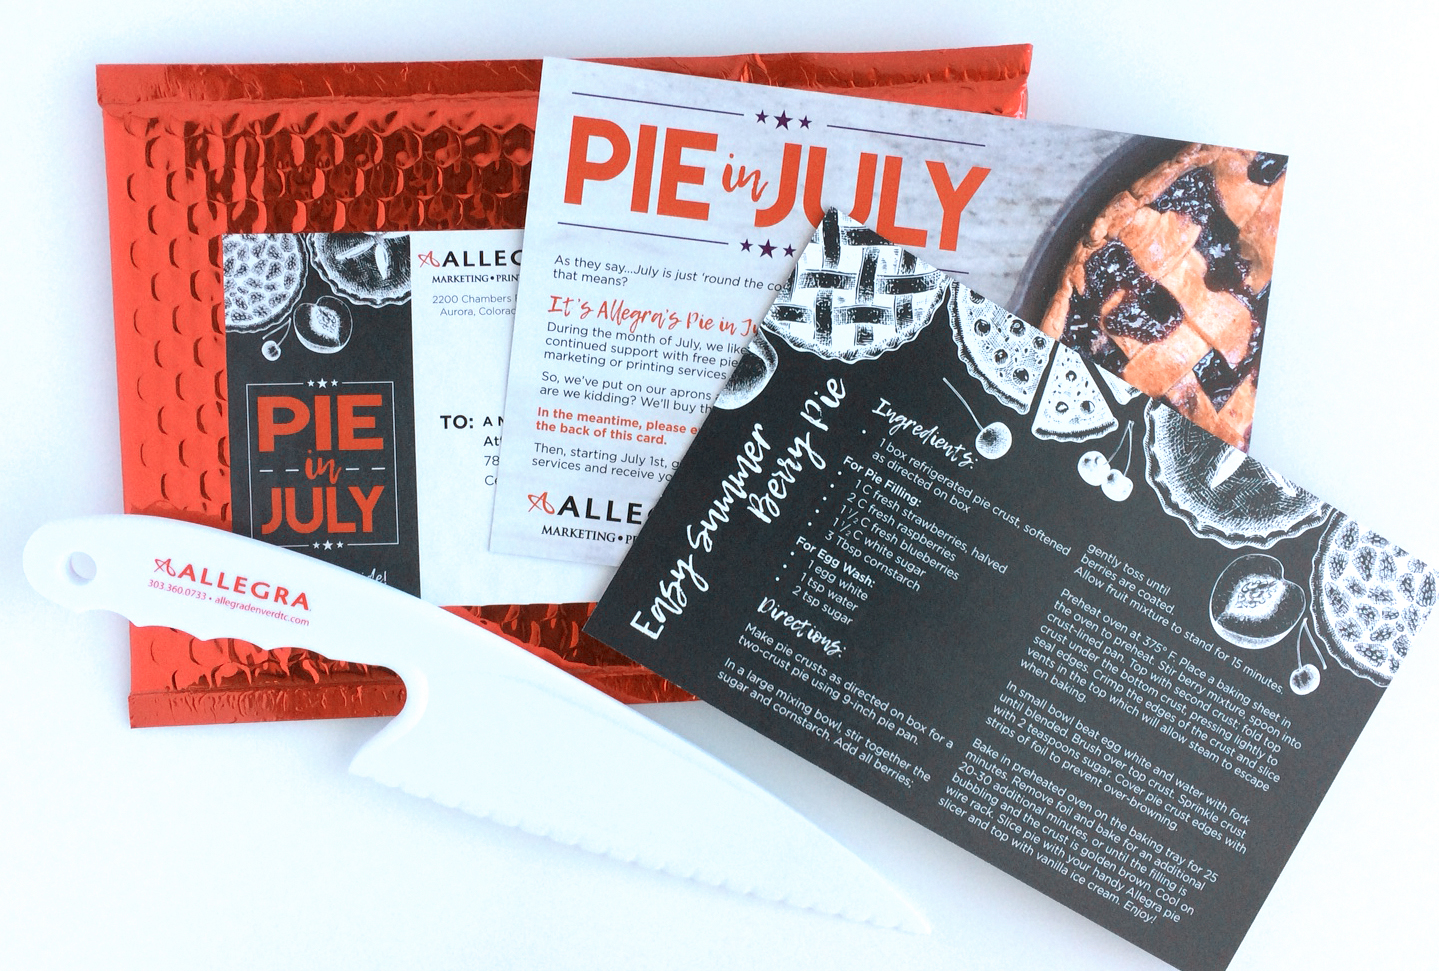 Pie in July marketing materials, including a knife, cards and mailing label